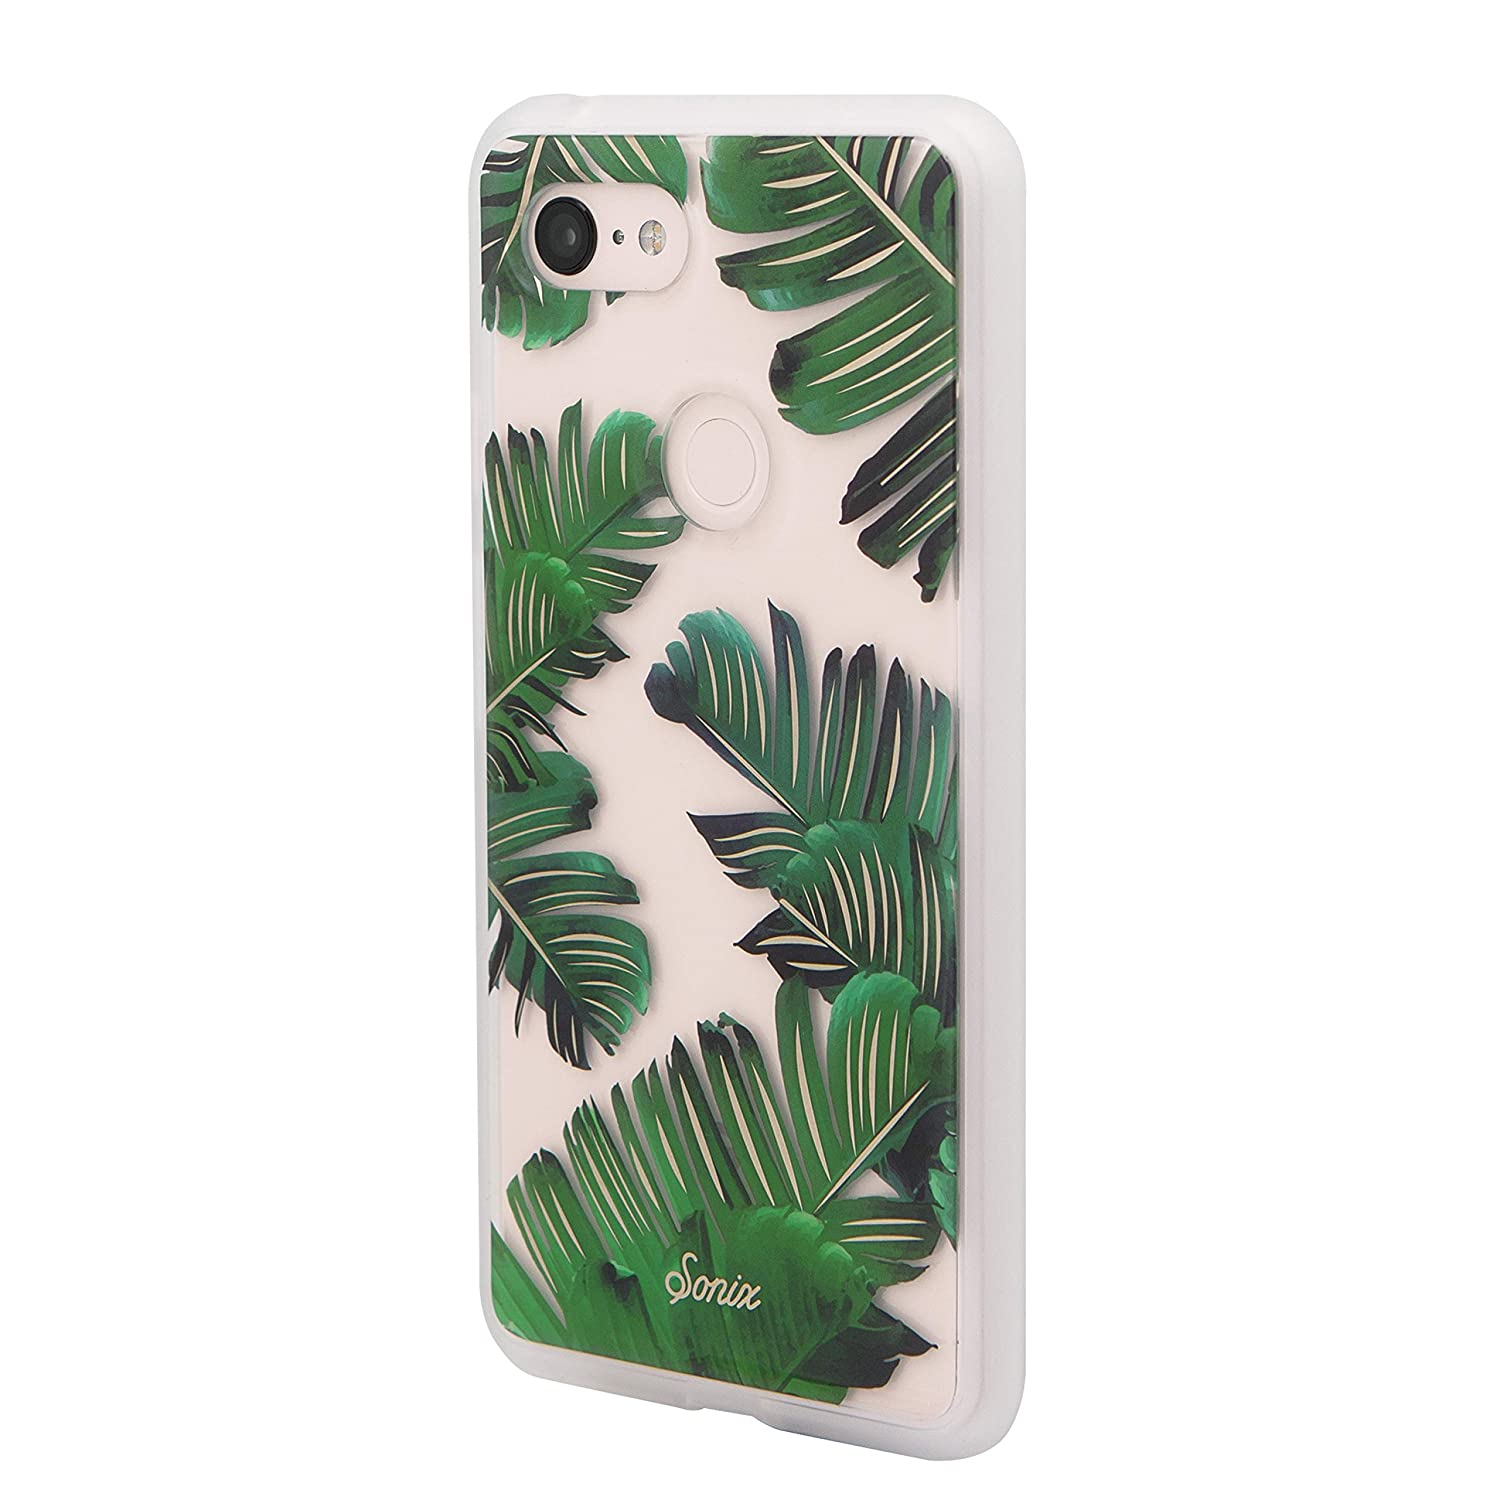 best service 67672 b3cf5 Sonix Bahama (Palm Leaf) Cell Phone Case [Military Drop Test Certified]  Women's Protective Clear Series for Google Pixel 3XL